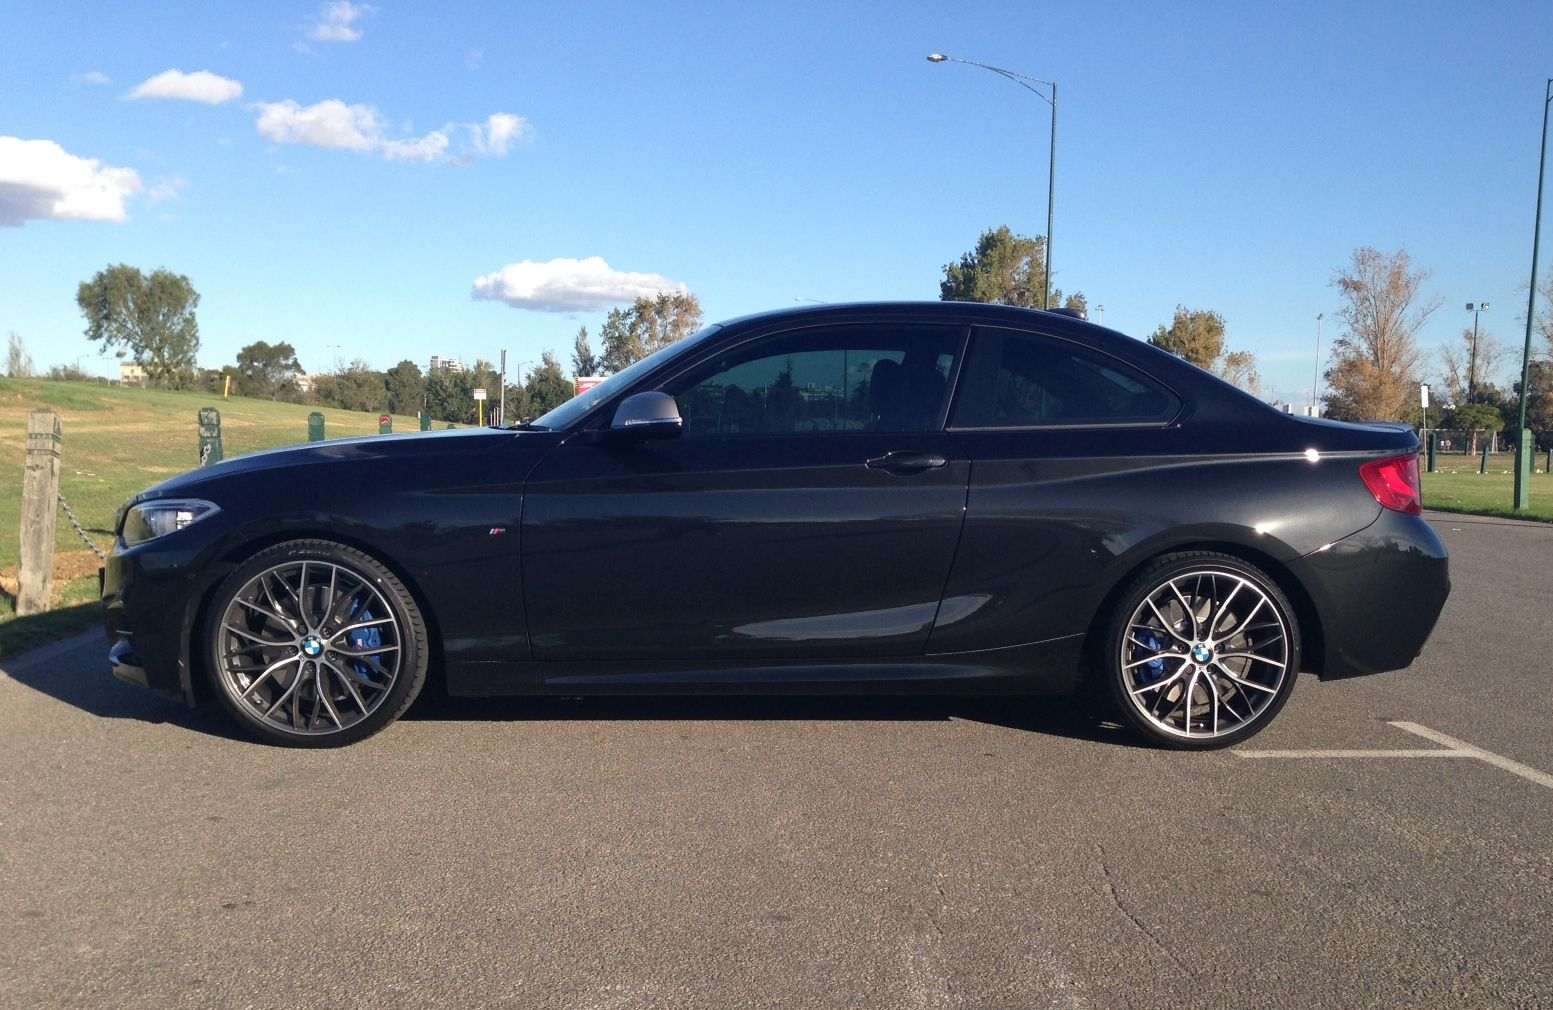 Official Black 2 Series Coupe Convertible Thread Page 2 2addicts Bmw 2 Series Forum Bmw Black Bmw Coupe